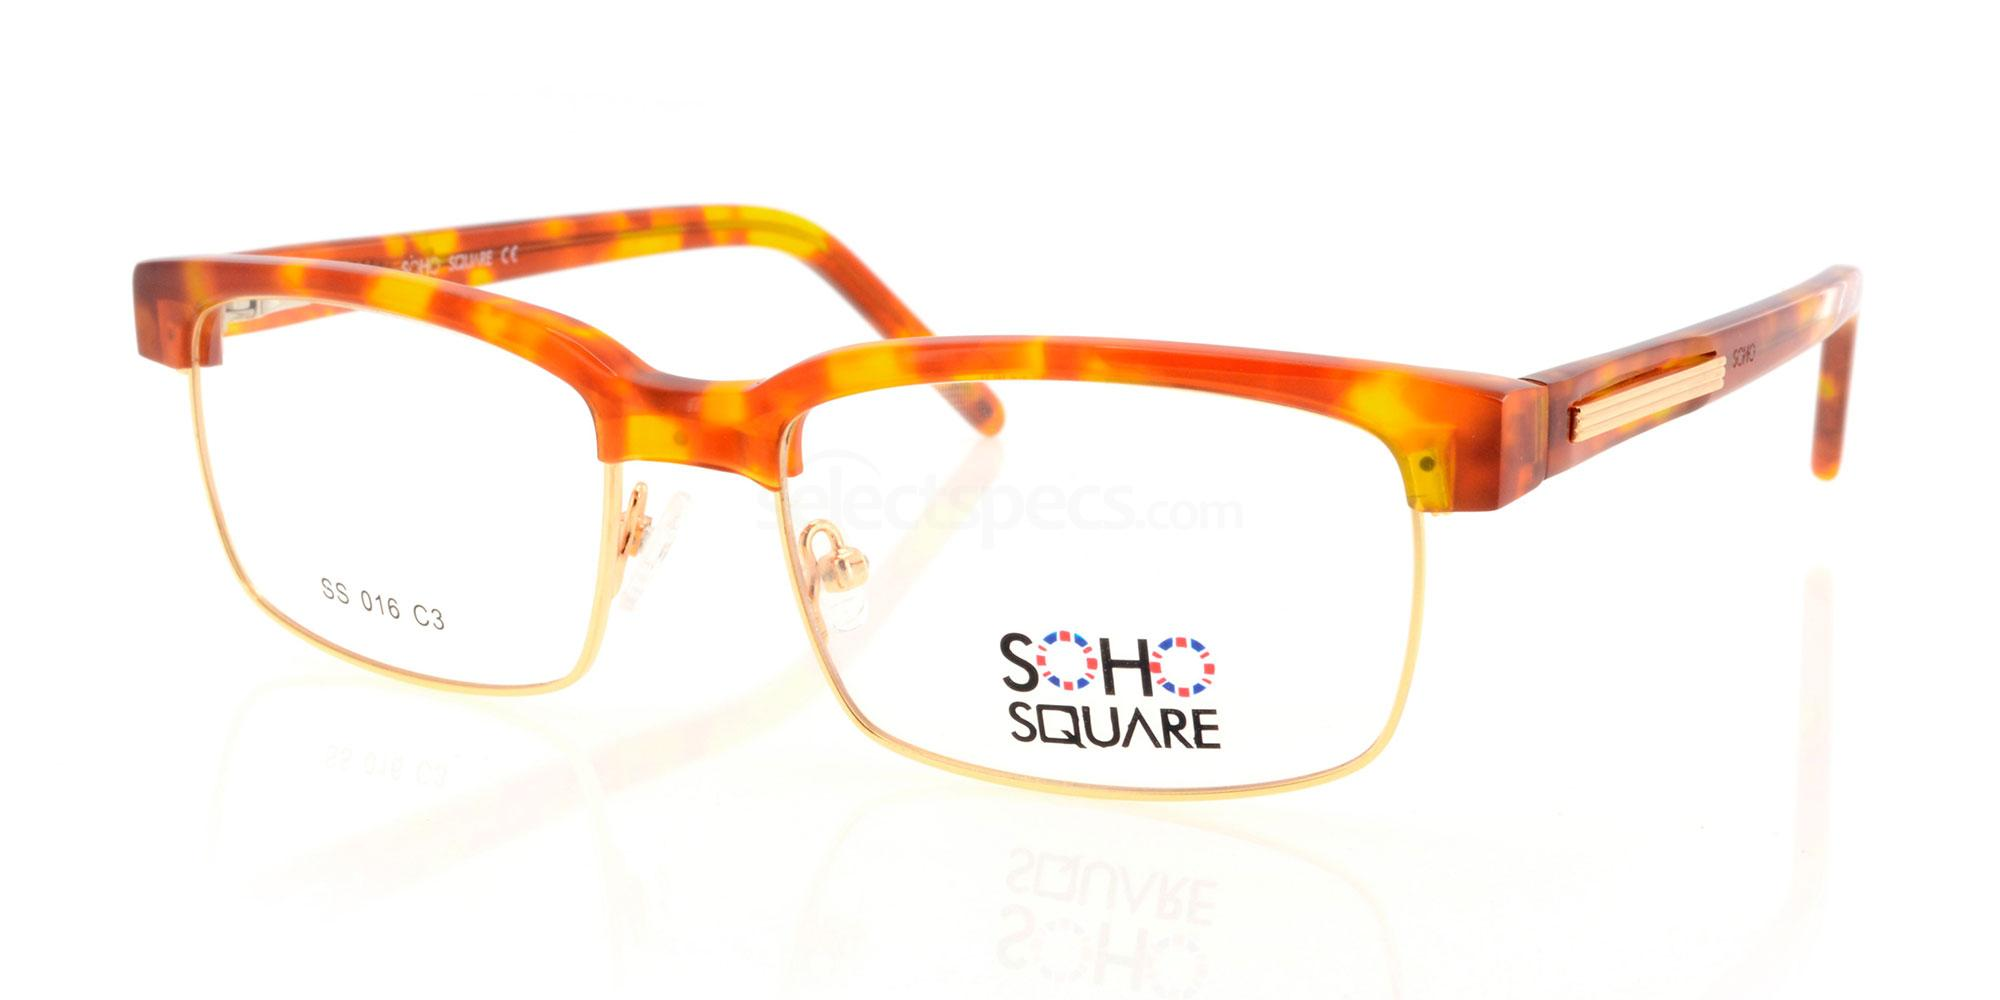 C3 SS 016 Glasses, Soho Square